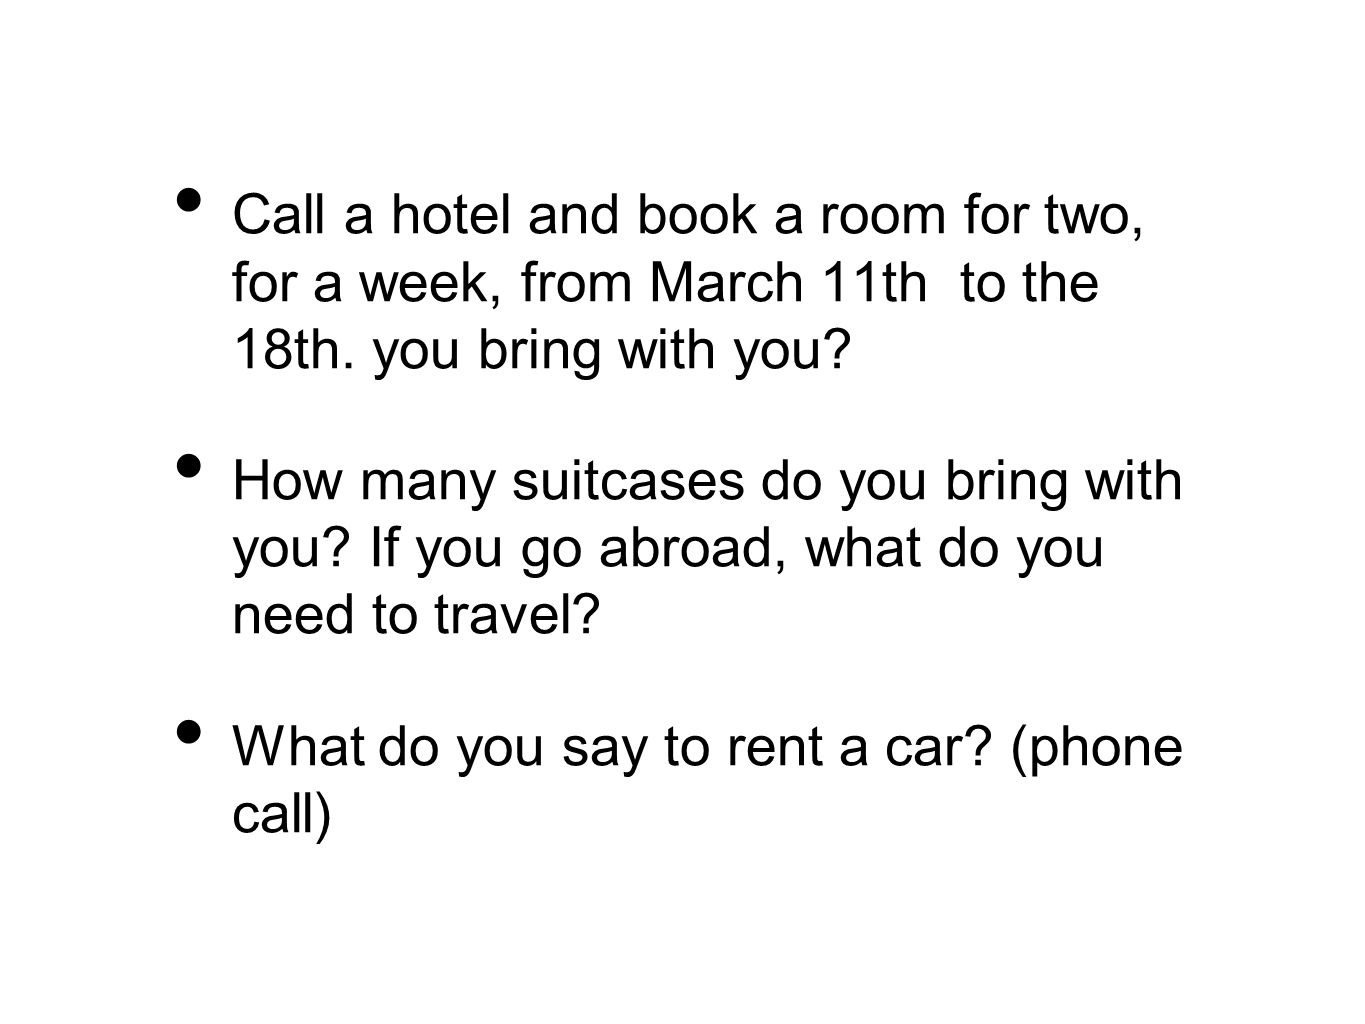 Call a hotel and book a room for two, for a week, from March 11th to the 18th. you bring with you? How many suitcases do you bring with you? If you go